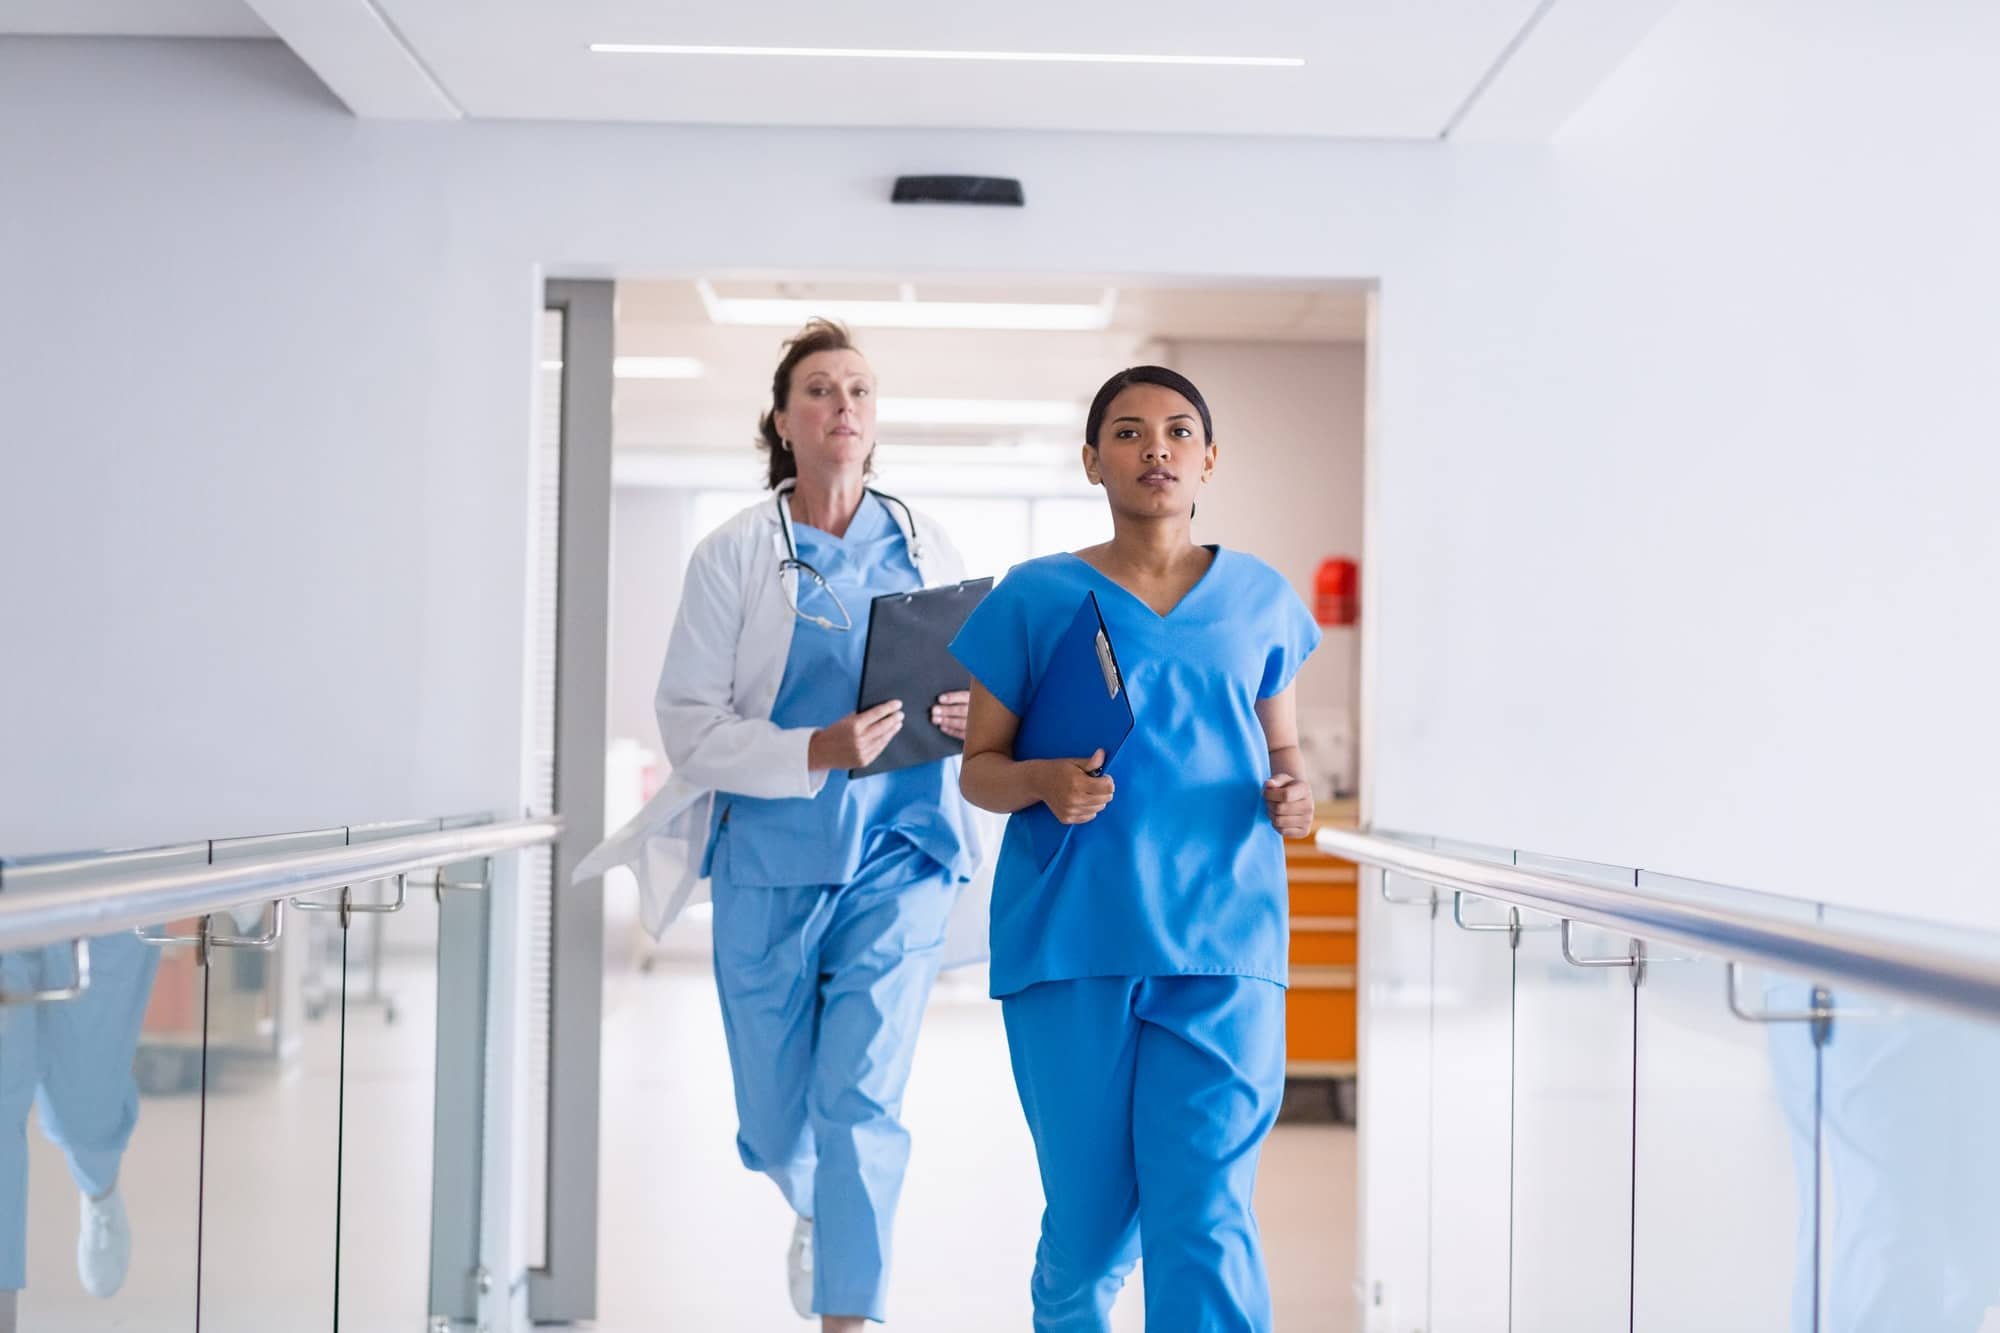 Nurse and doctor running